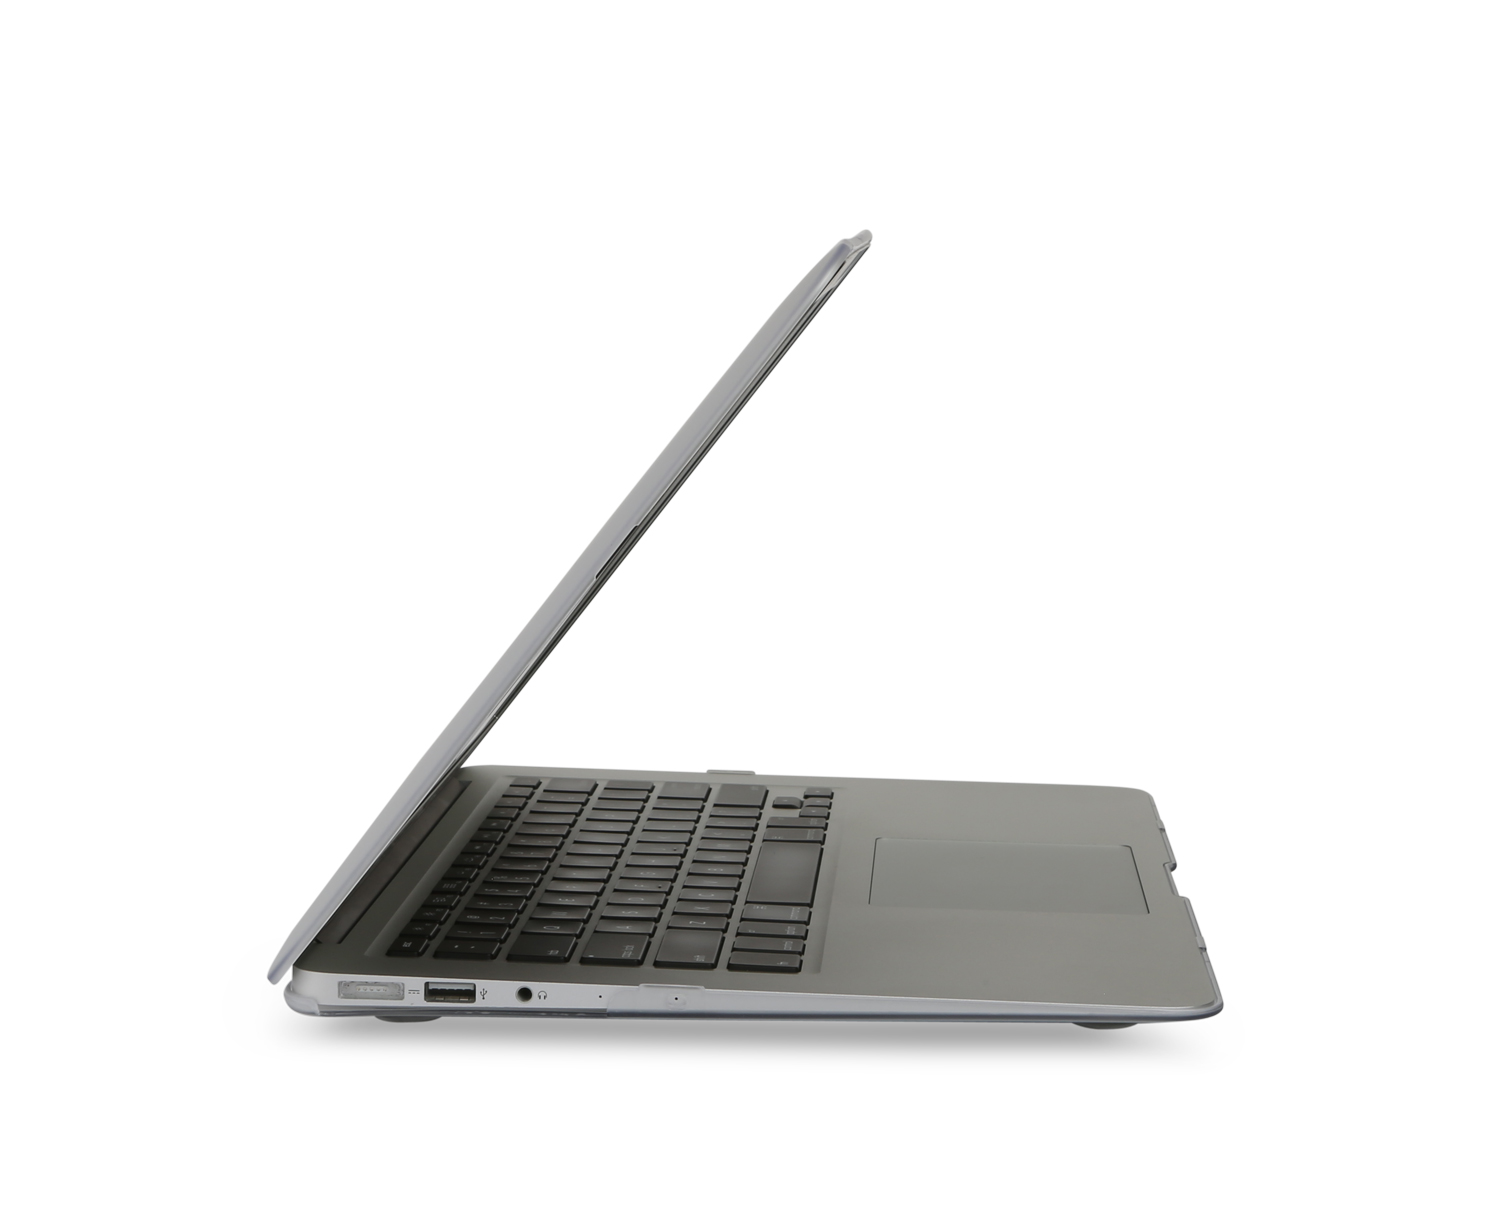 snapshell-macbookair-clear_06_1500x1221.jpg